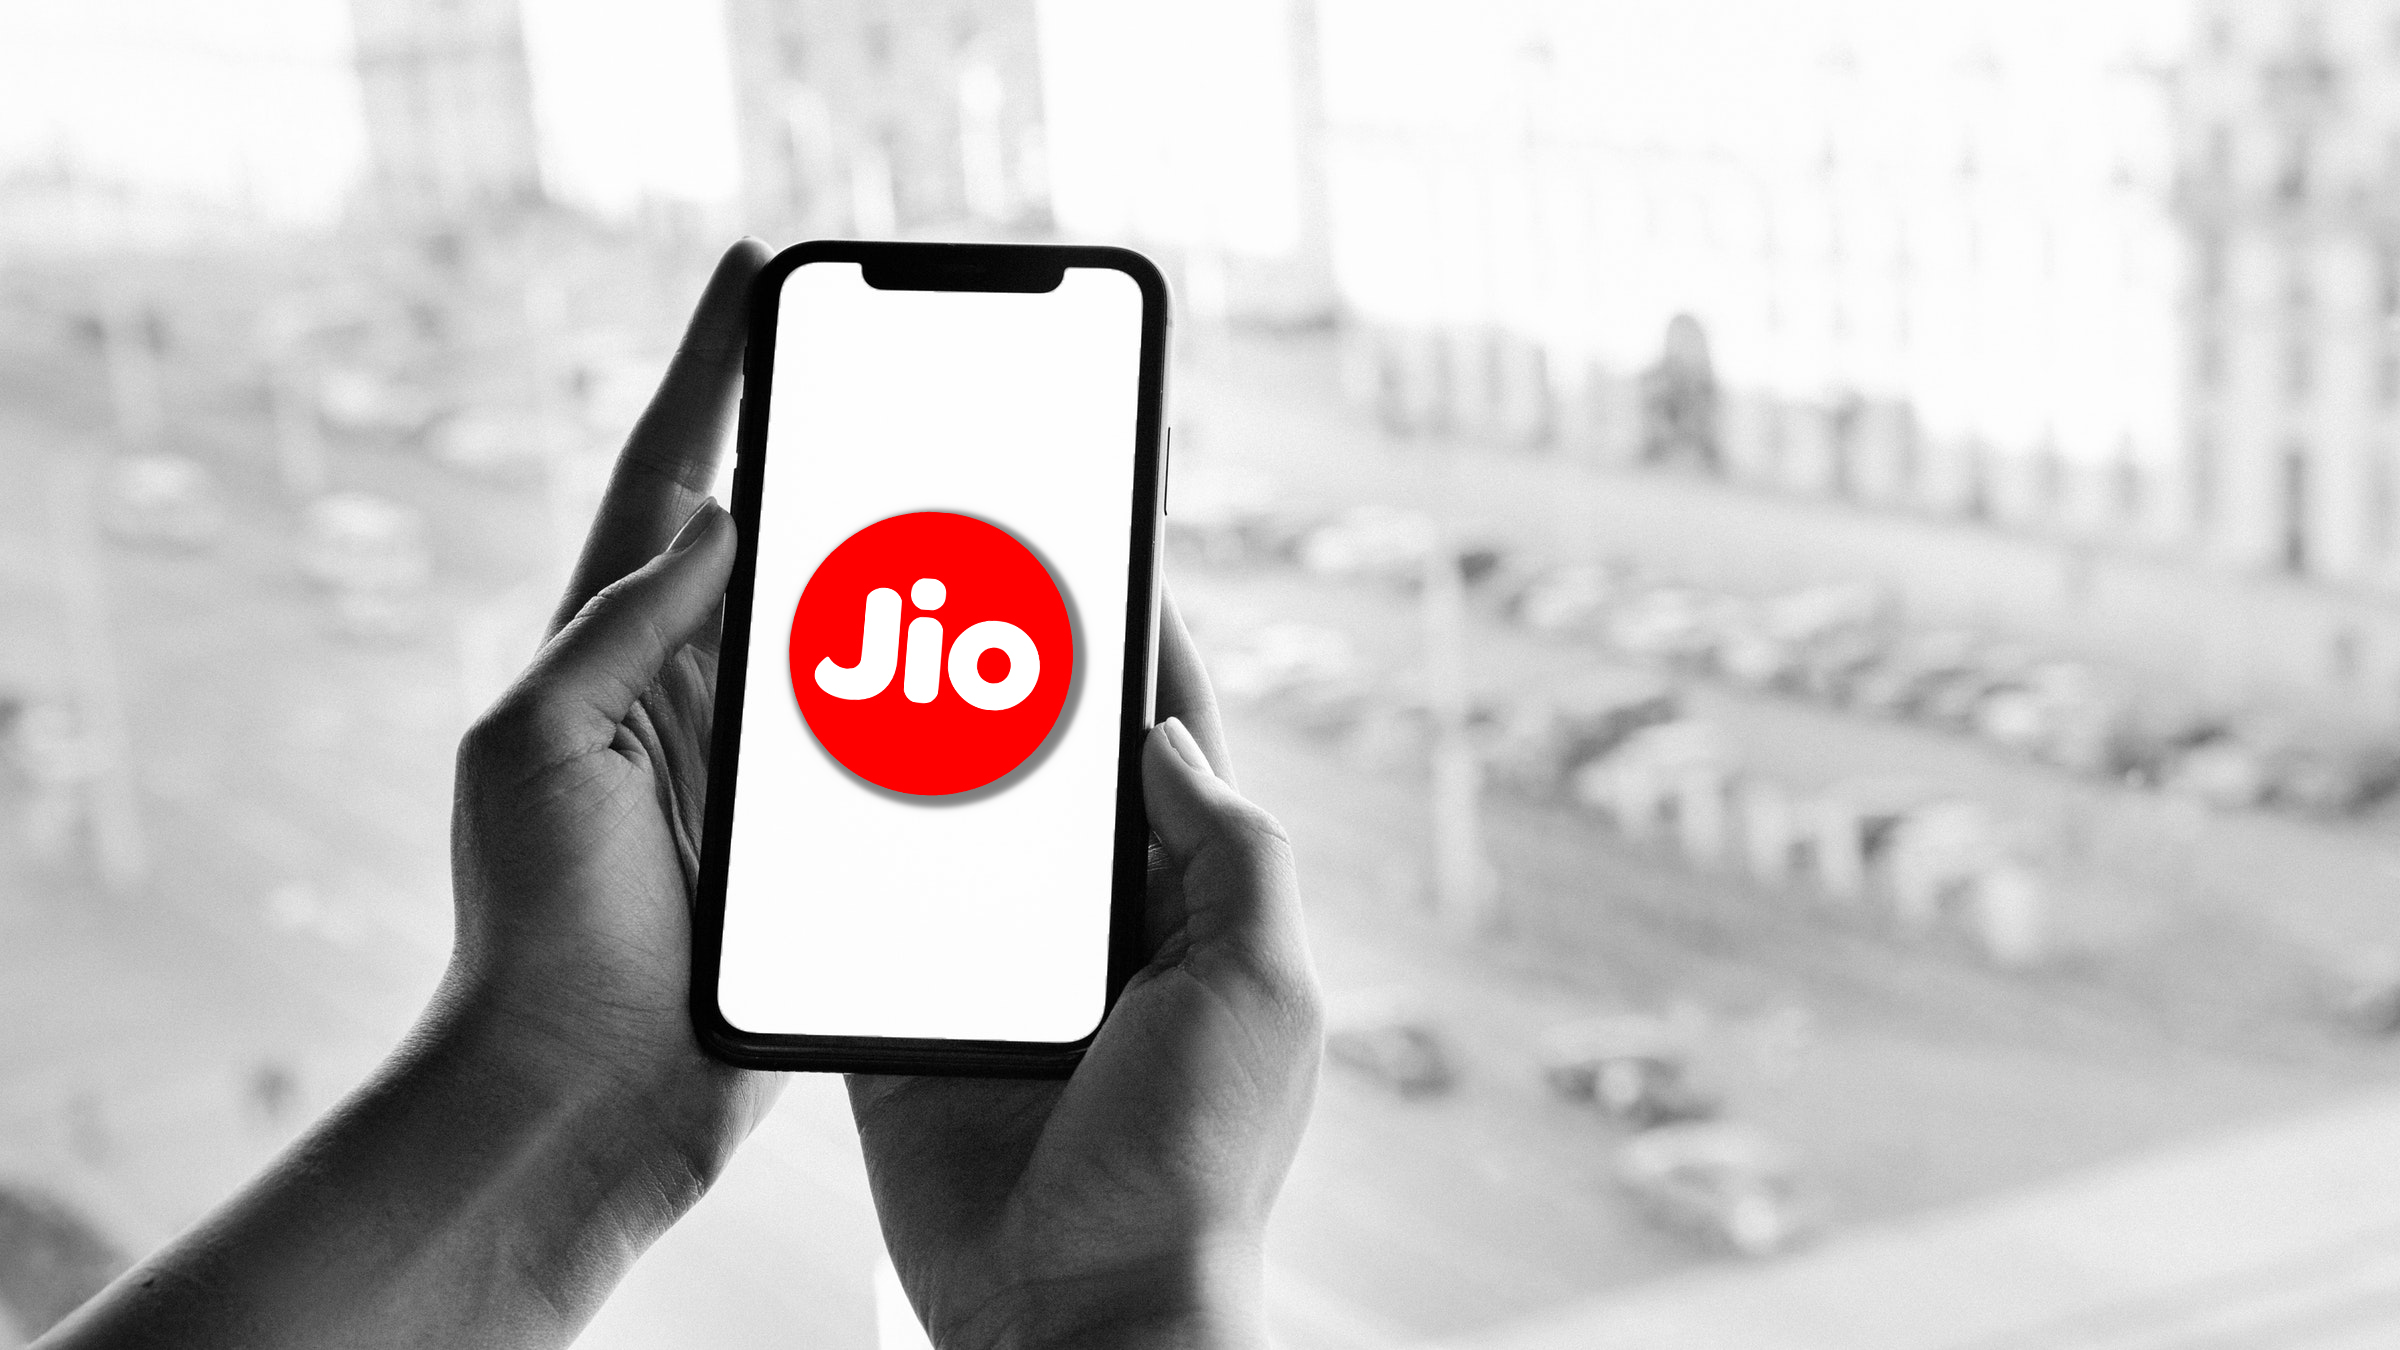 Grayscale Photo of Person Holding Smartphone with Jio Logo